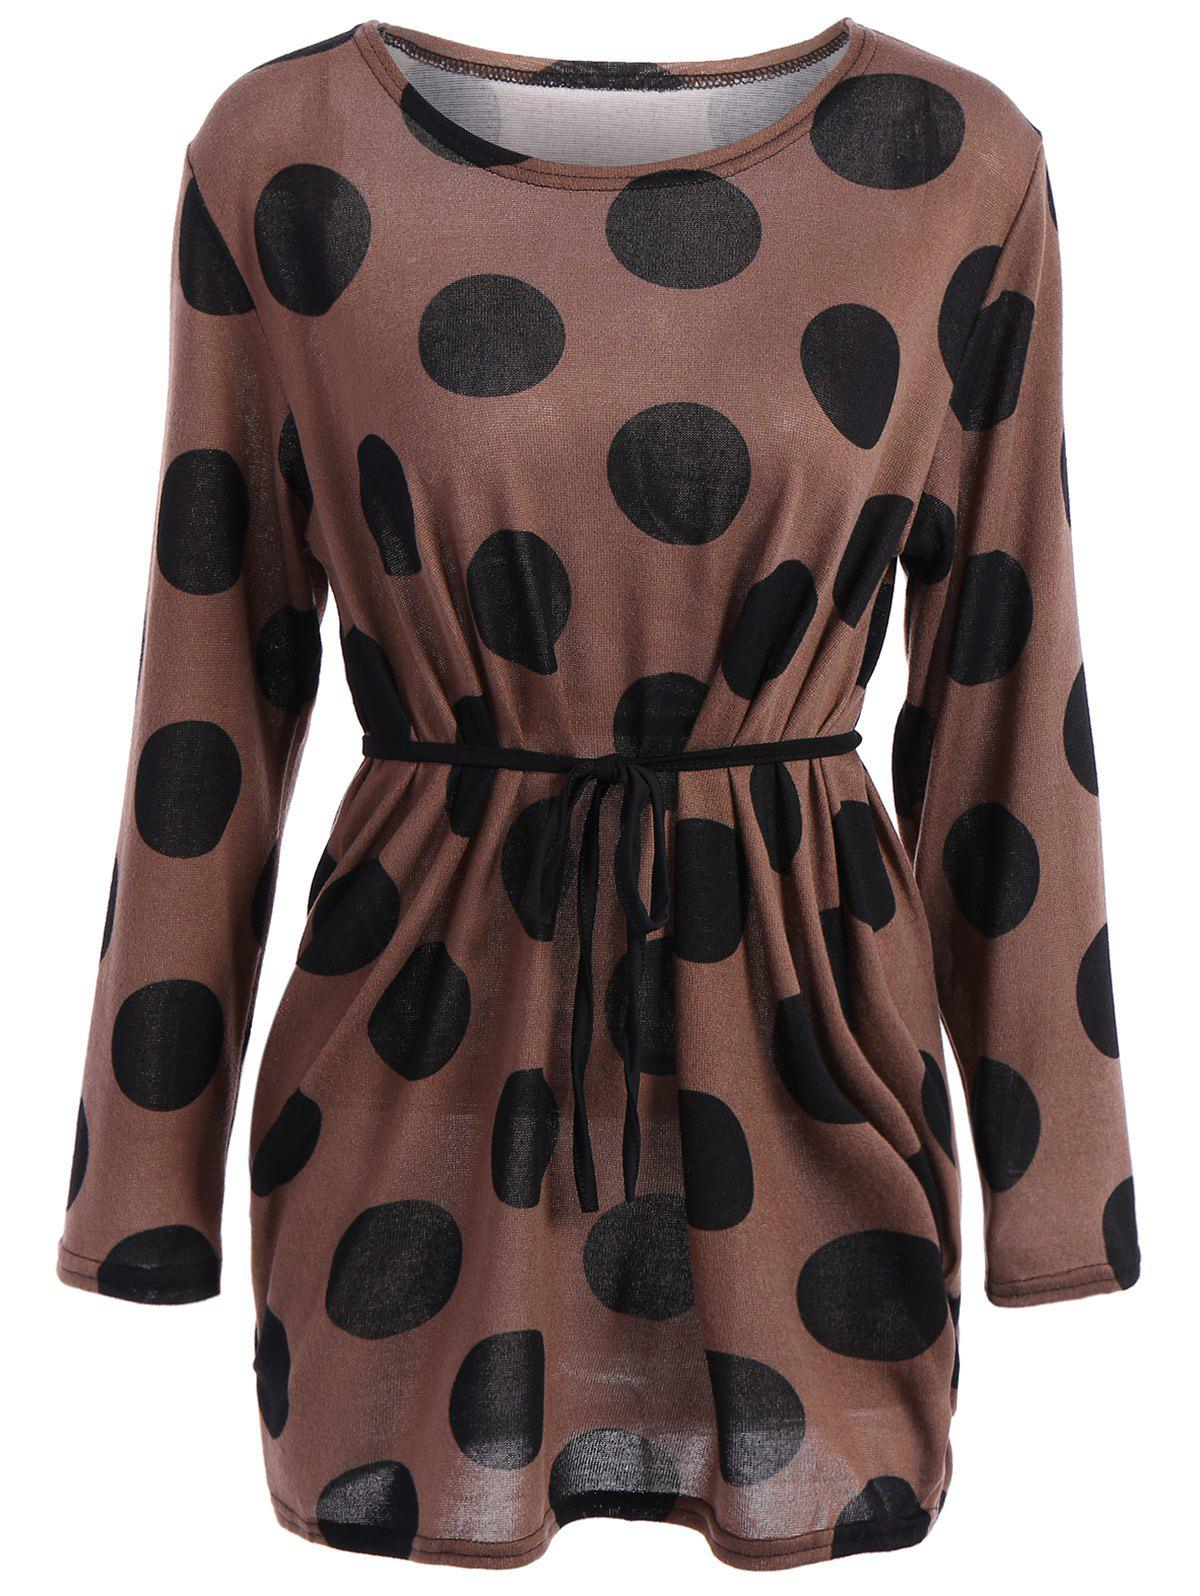 Casual Scoop Collar Polka Dot Print Loose Long Sleeve T-Shirt For Women - KHAKI ONE SIZE(FIT SIZE XS TO M)